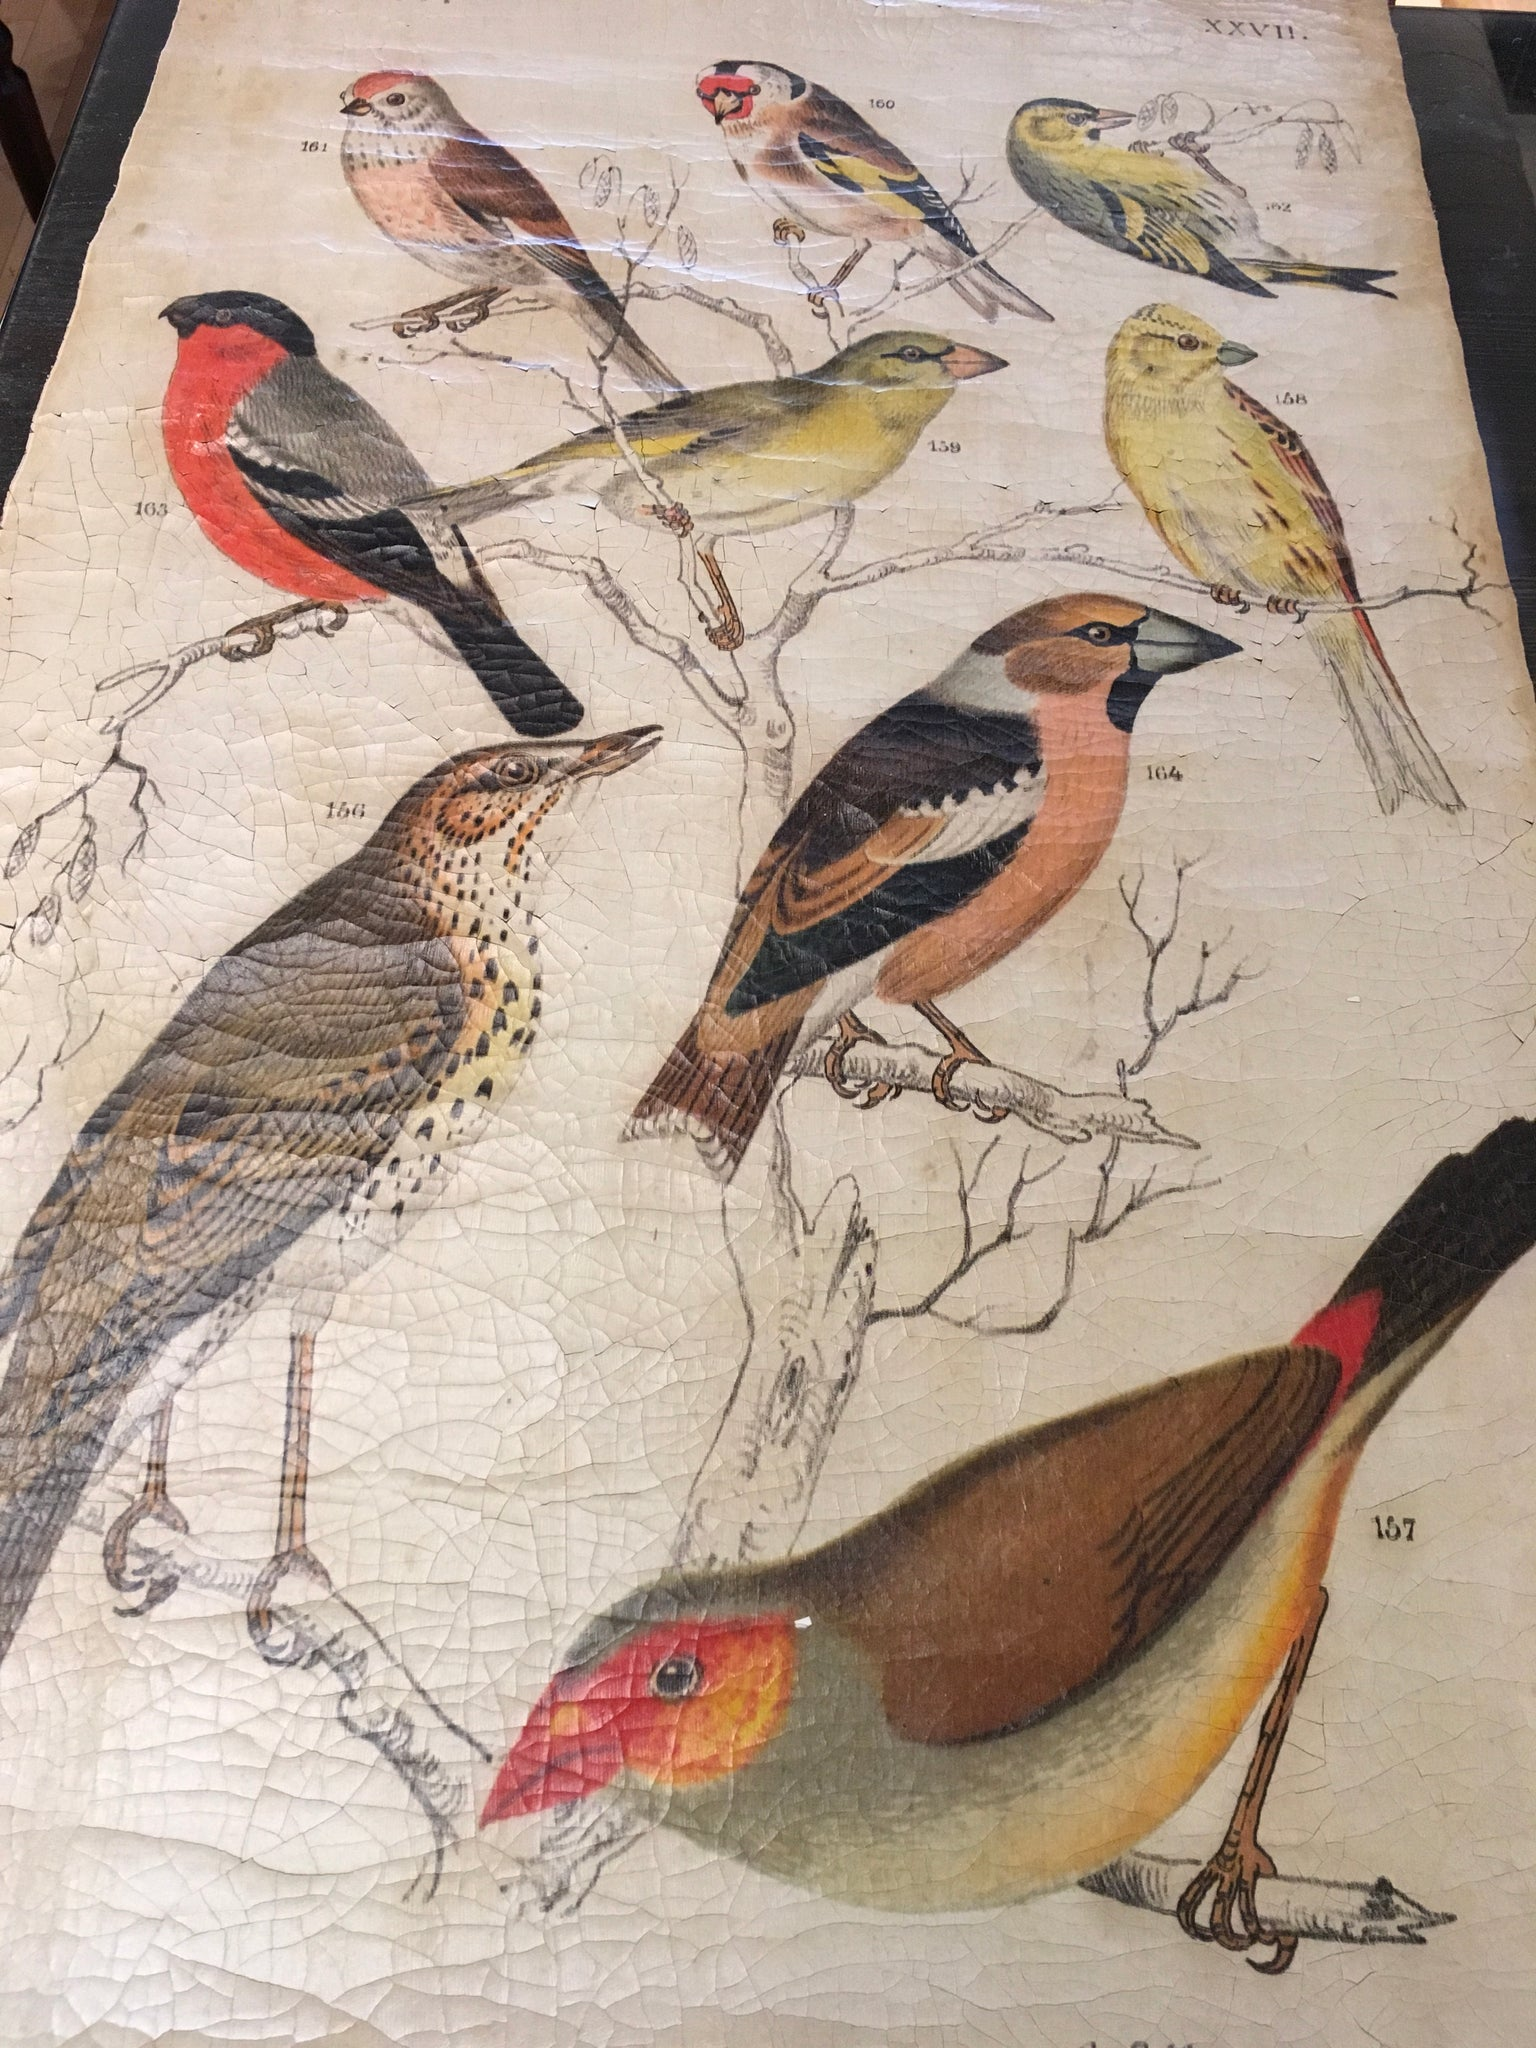 Bird Art on cracked canvas